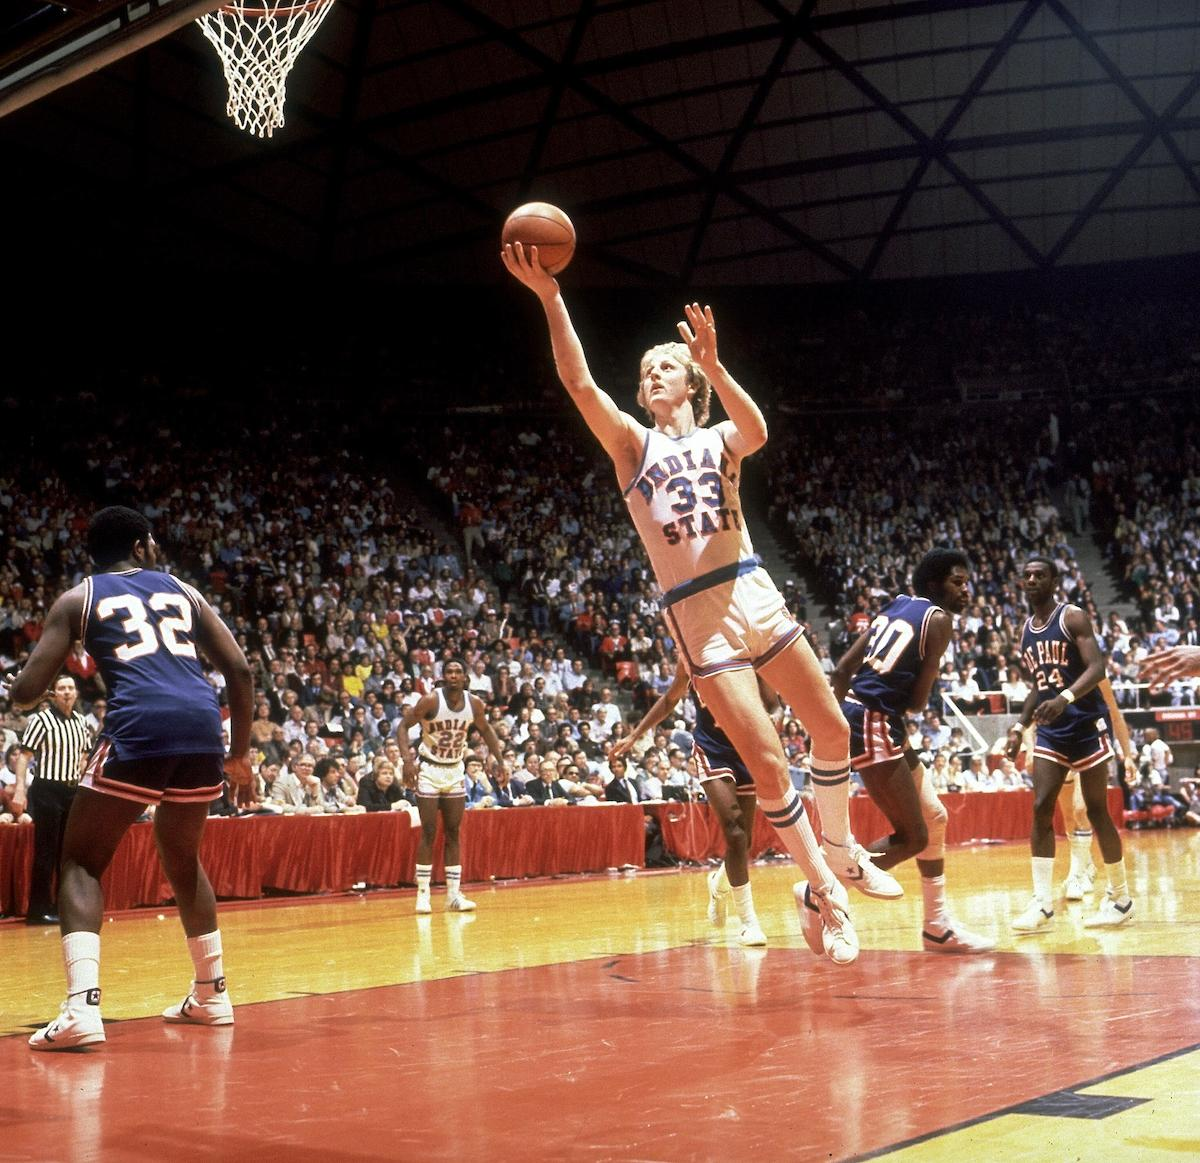 Larry Bird at Indiana State.